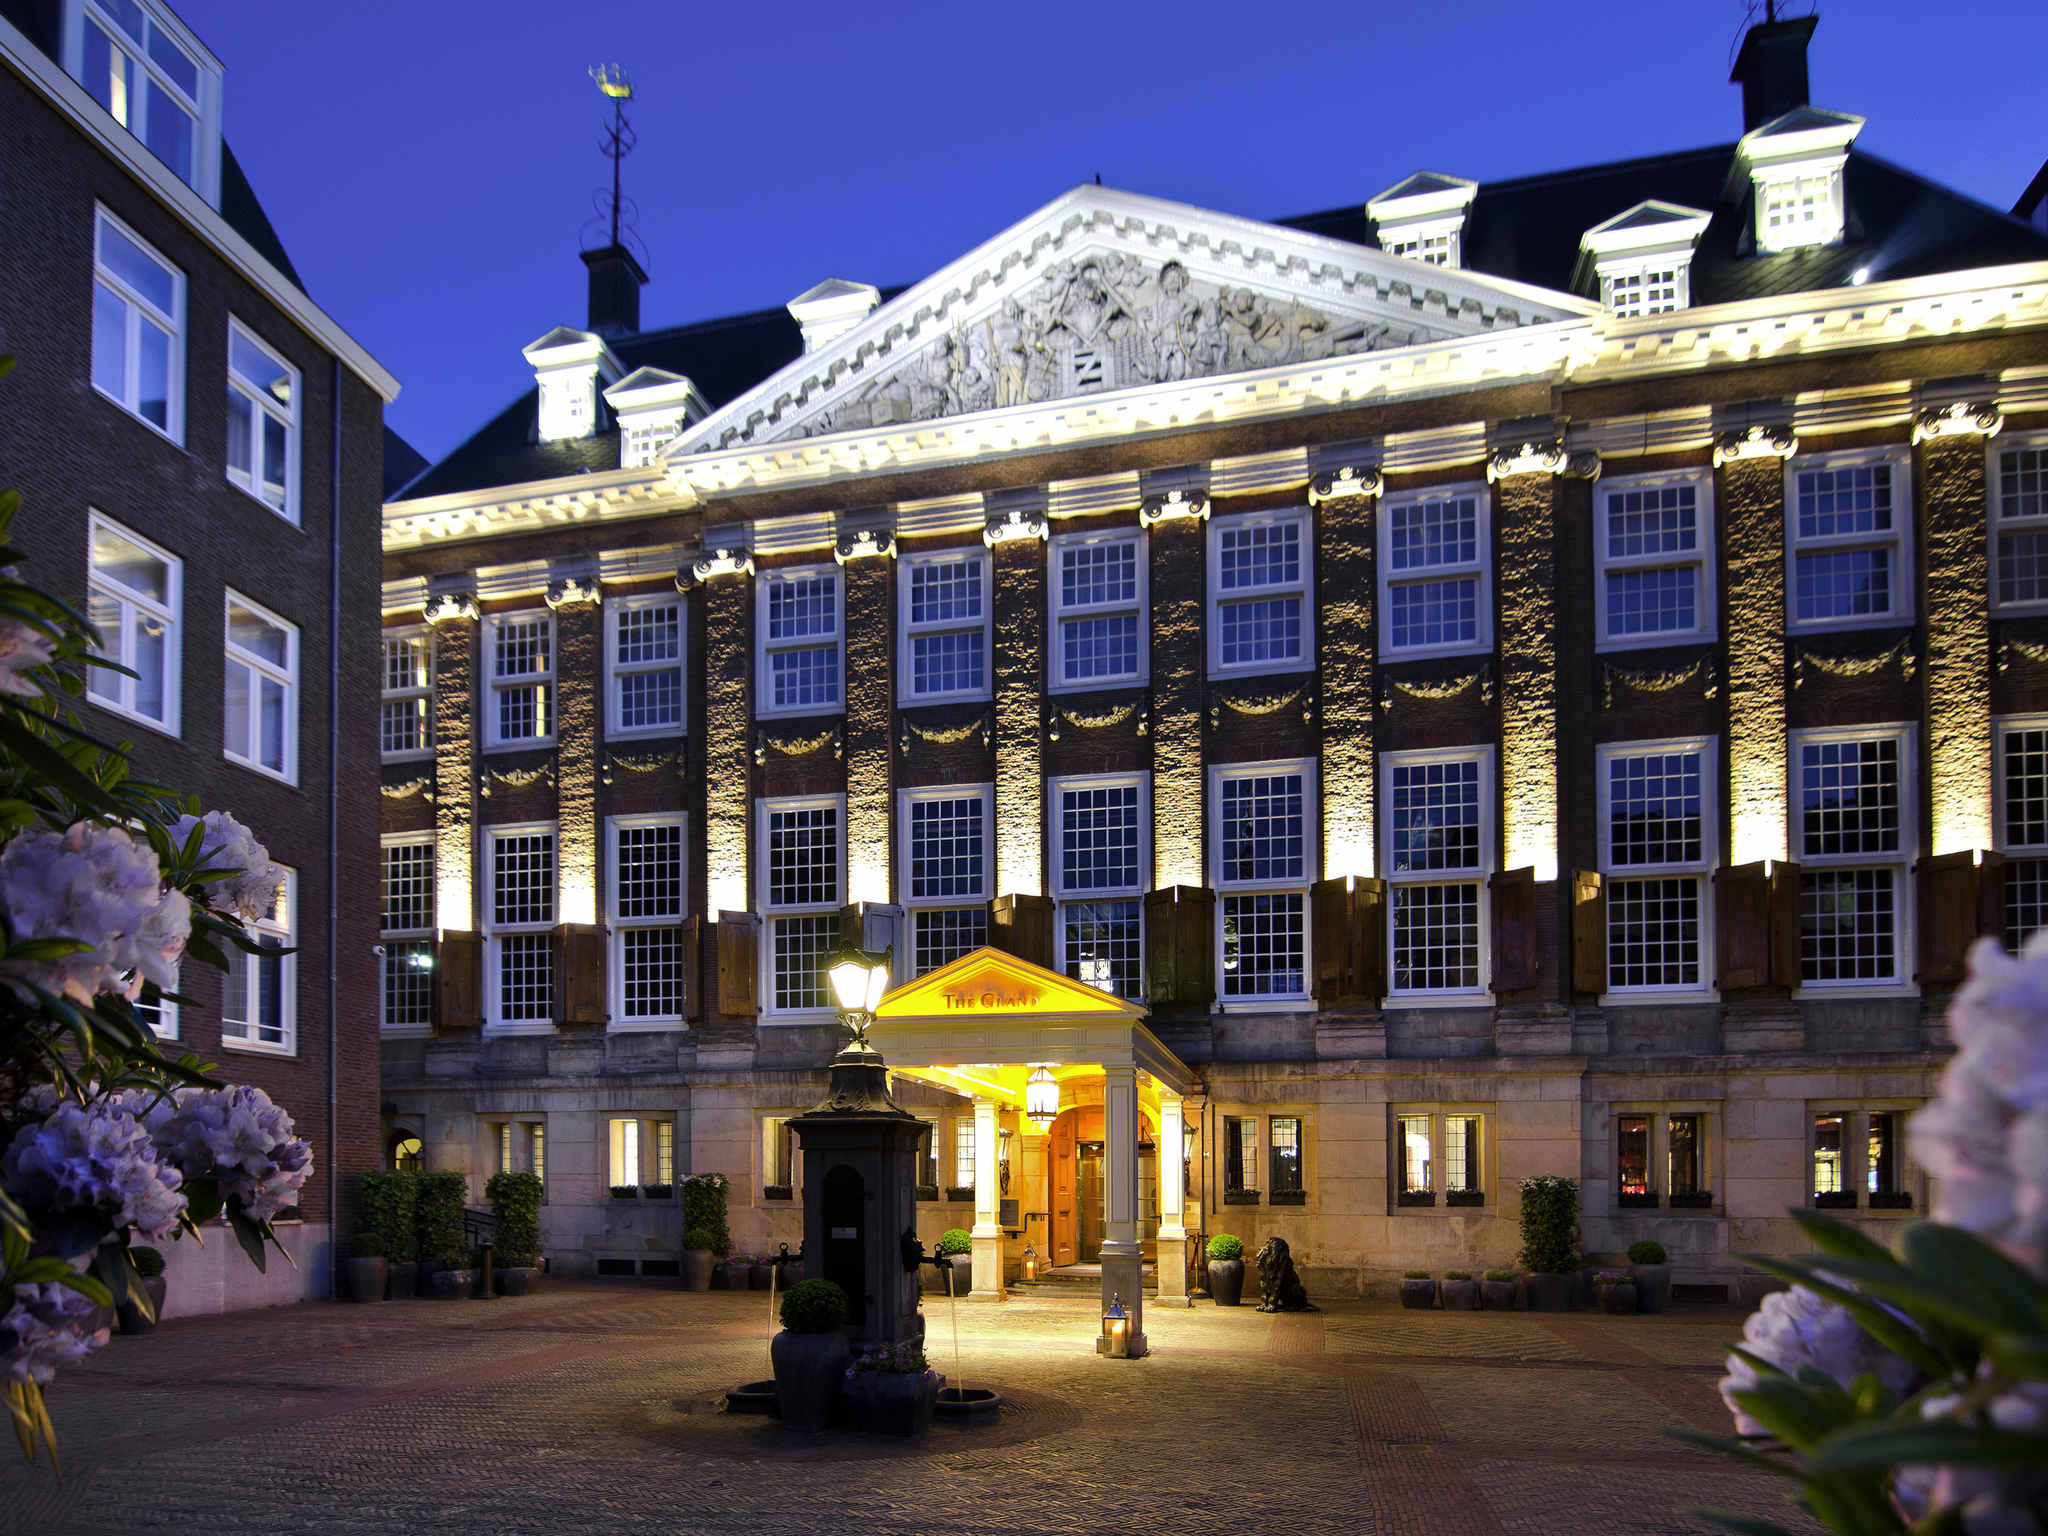 Hotel – Sofitel Legend The Grand Amsterdam